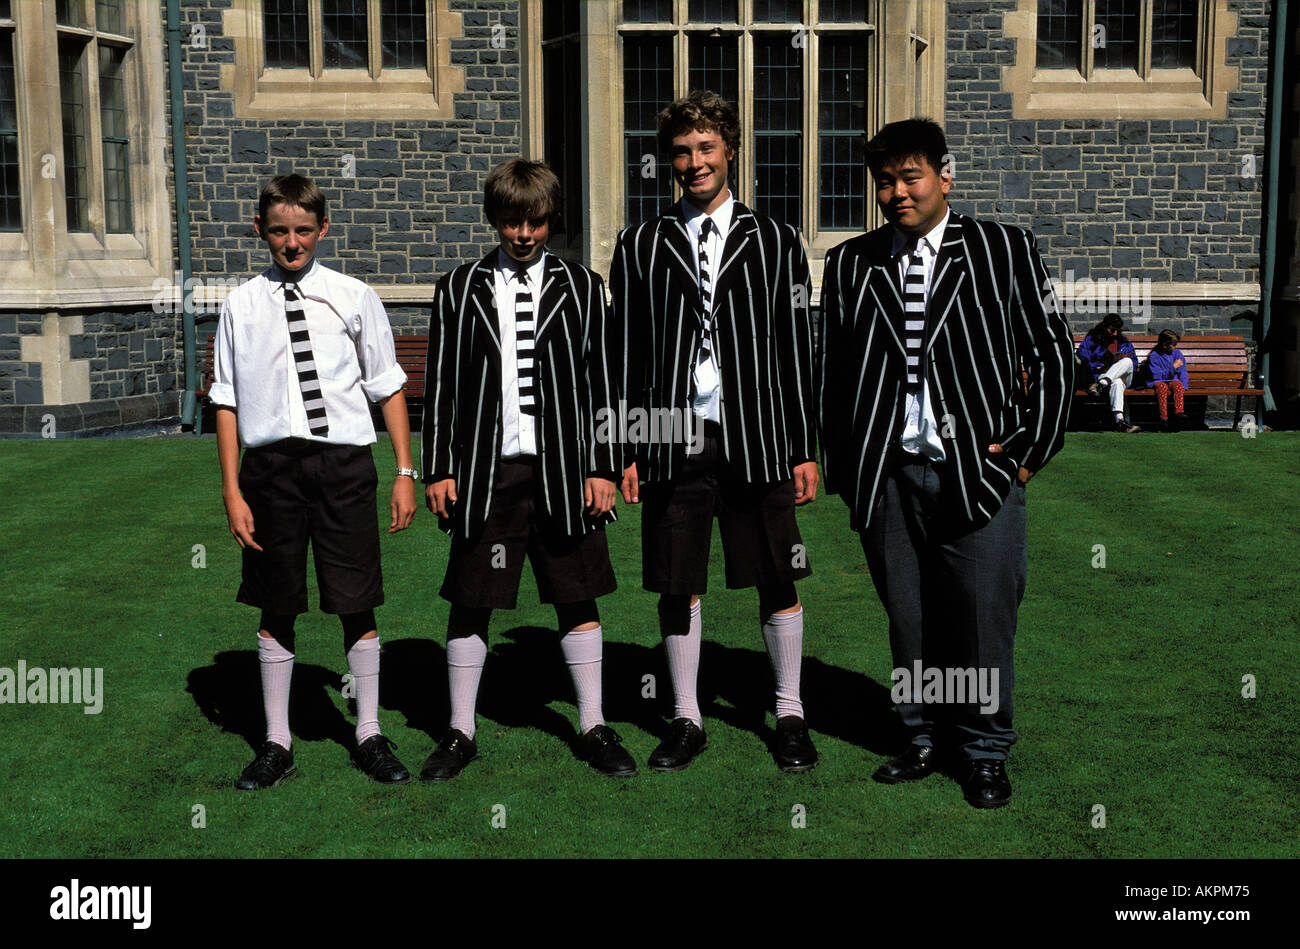 Christchurch students from exclusive college - Stock Image